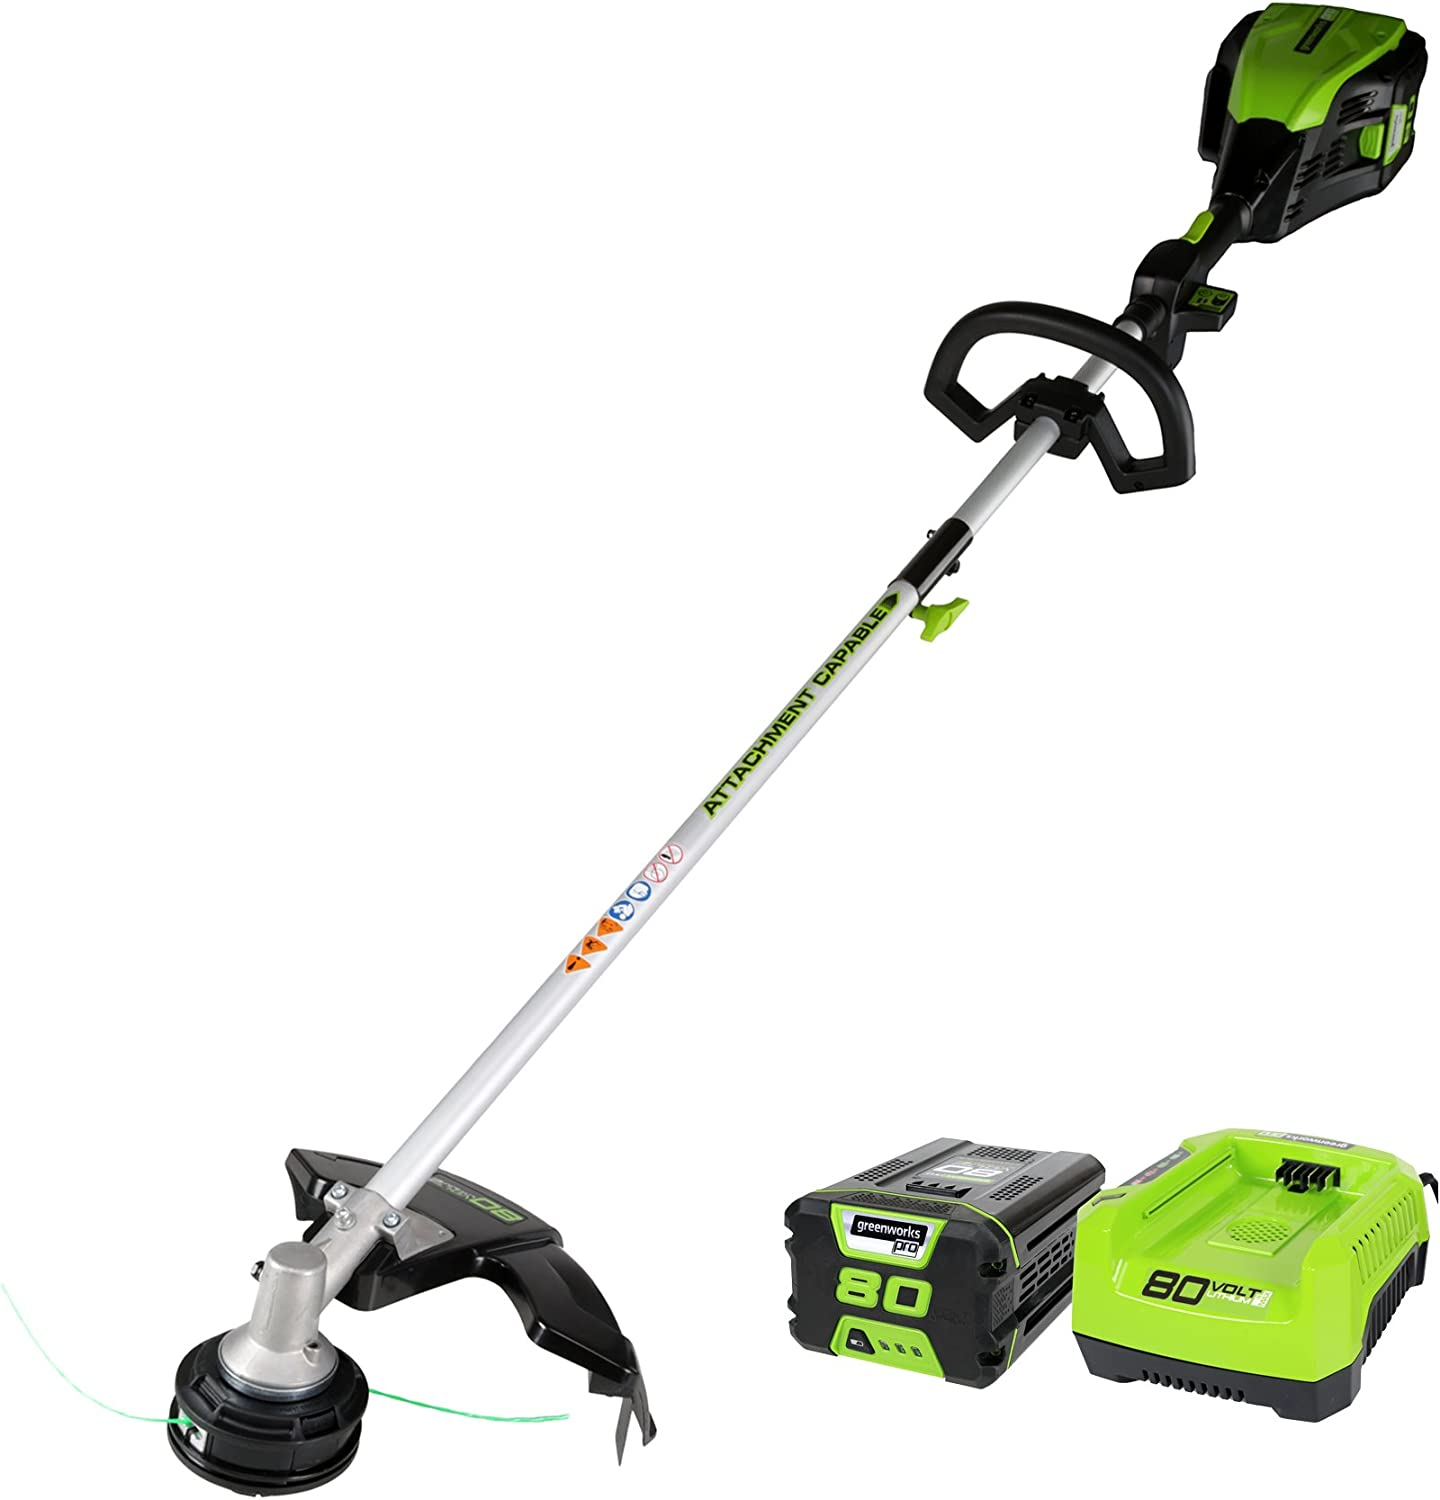 GreenWorks Pro 80V 16-Inch Cordless String Trimmer Attachment Capable , 2Ah Battery and Charger Included